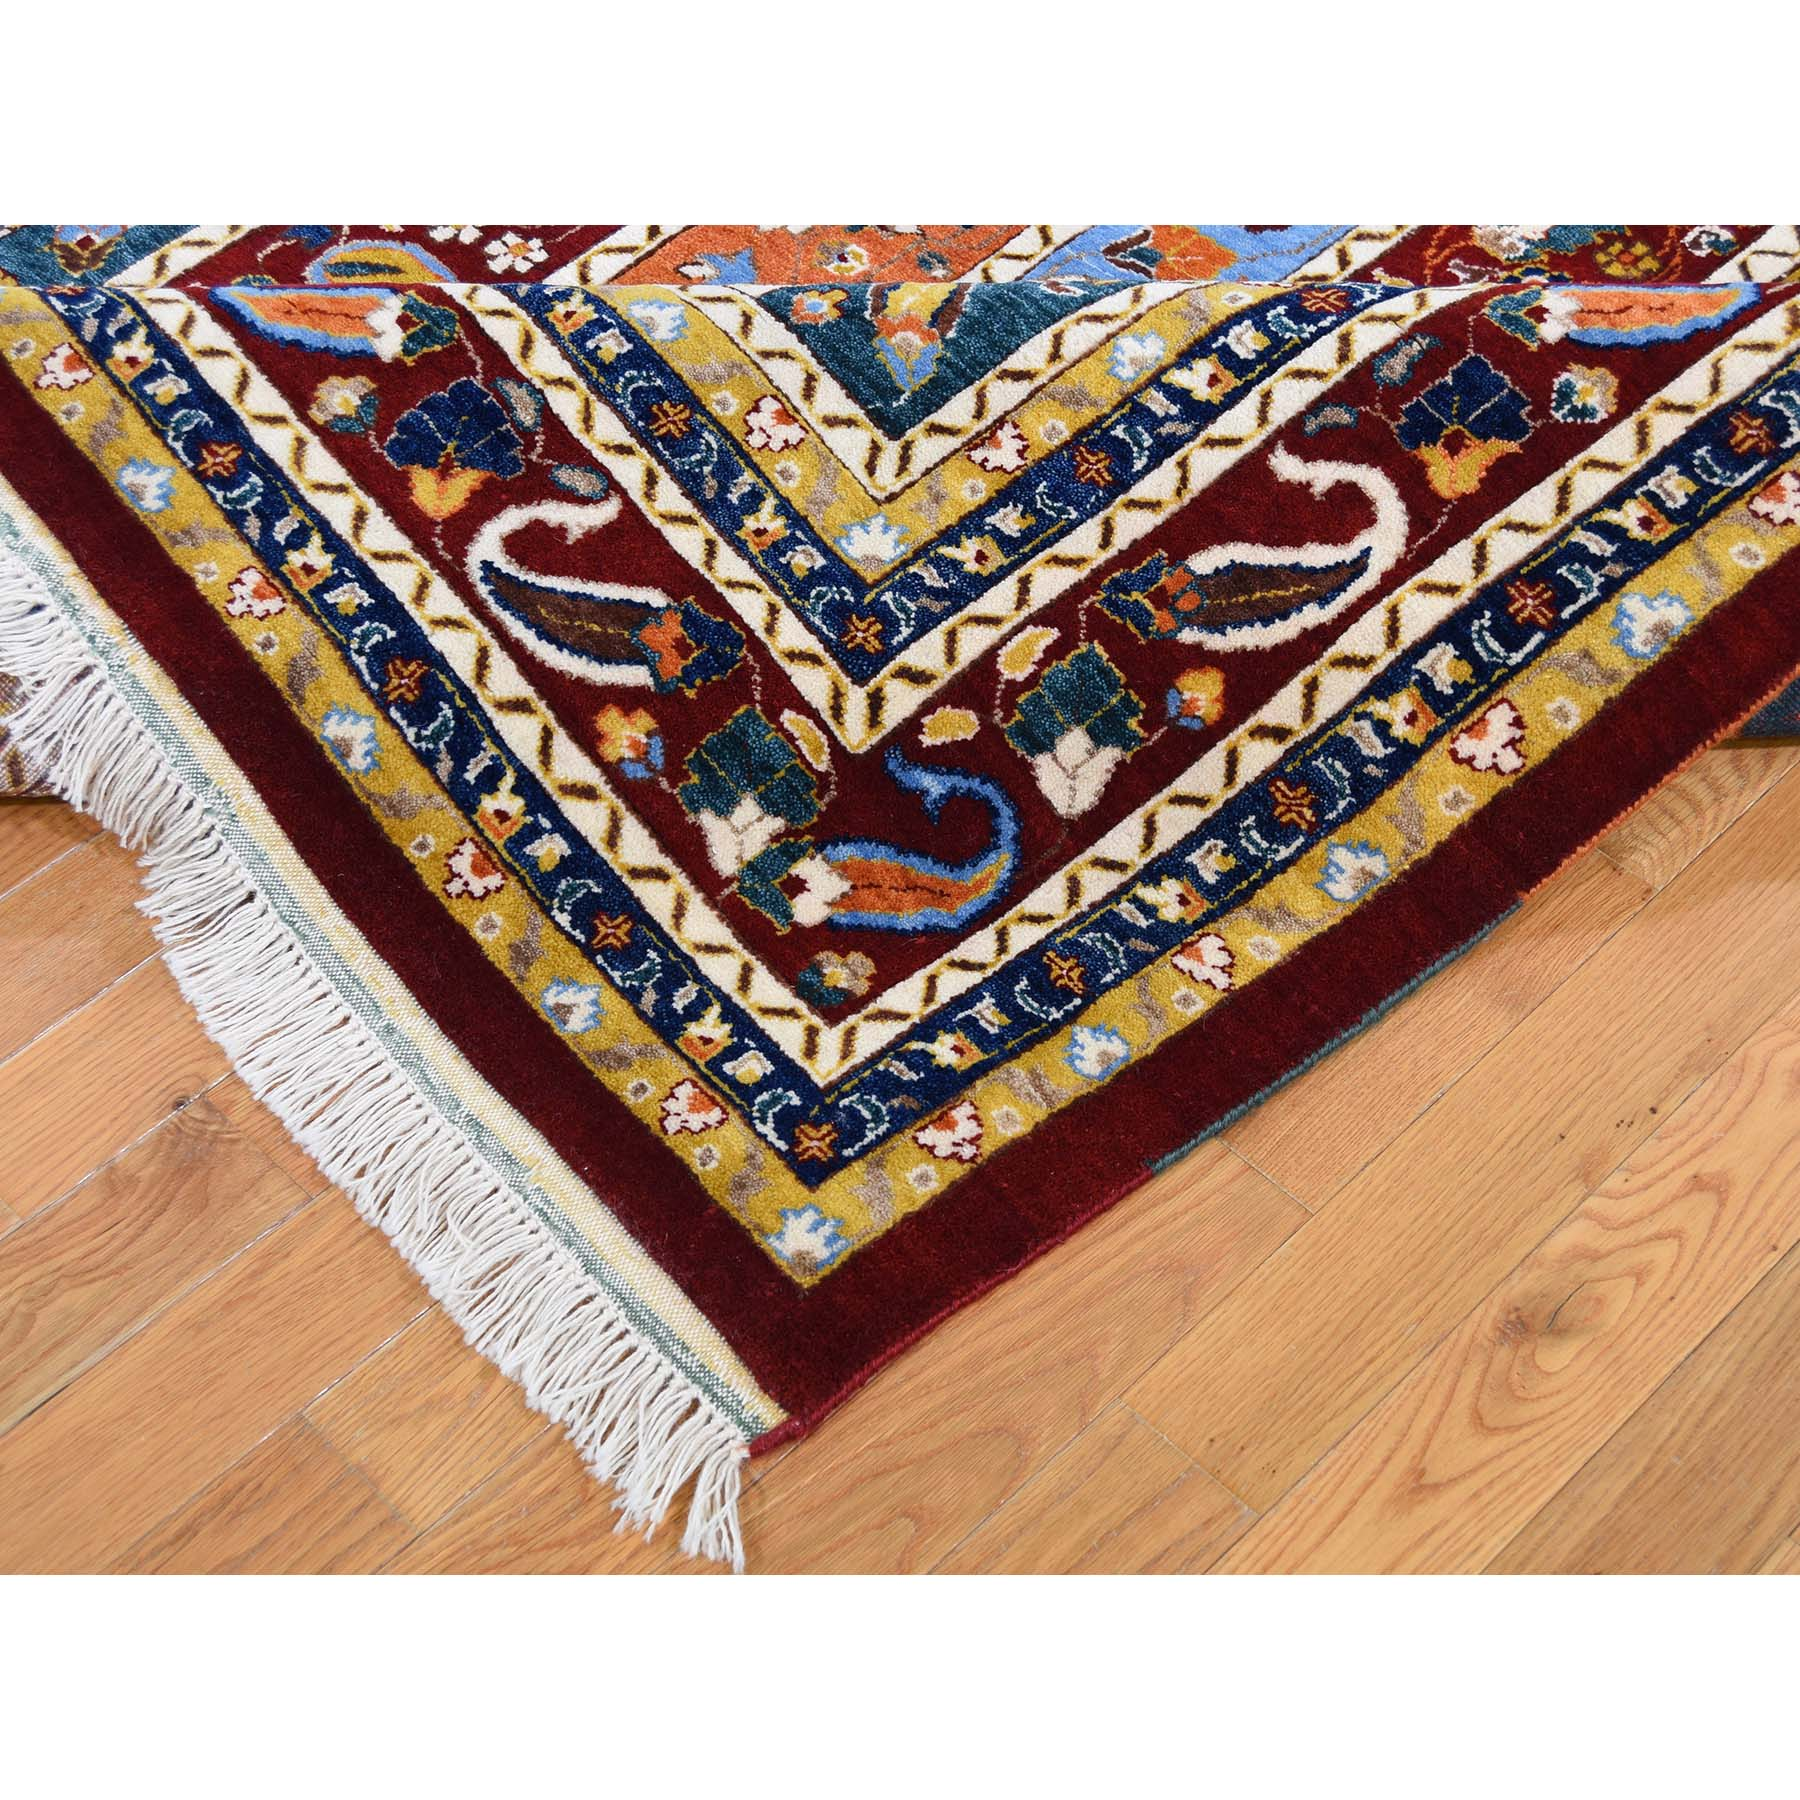 8-2 x9-10  On Clearance Kashkuli Shawl Design With Paisley Multicolored Hand Knotted Oriental Rug